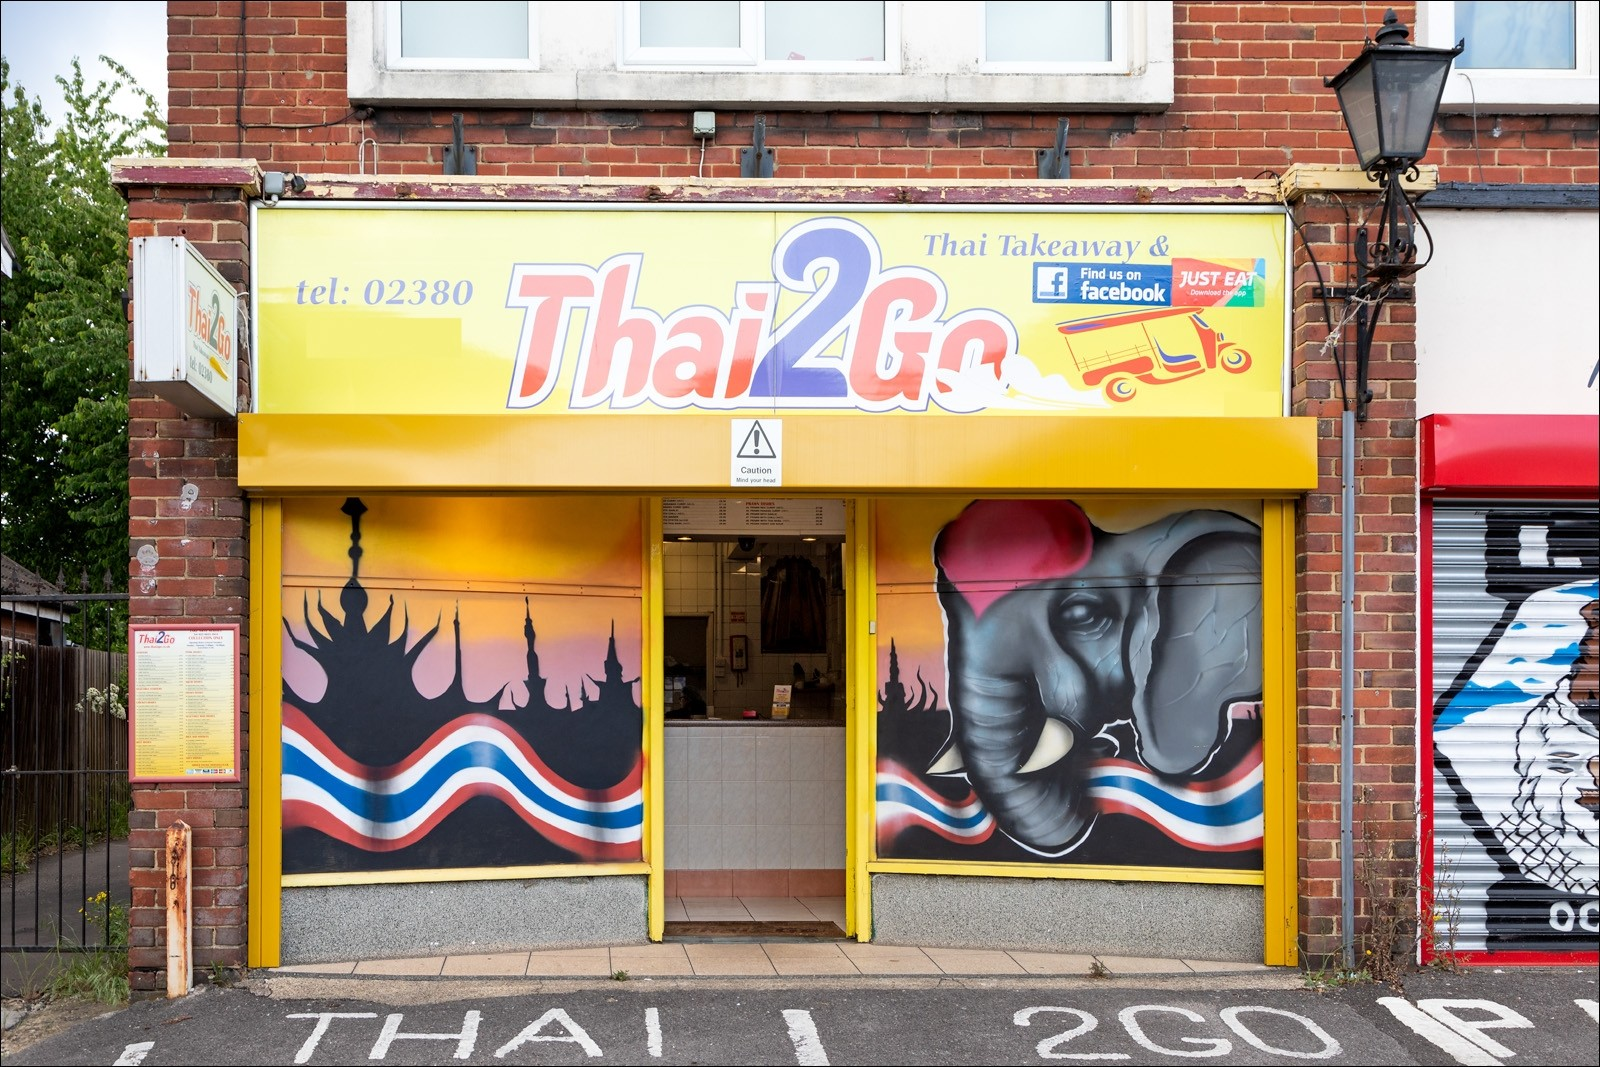 Thai Take Away With Deliveries (A5 Use), 2 Bed Flat Above, Main Road Parade, Southampton, Hampshire - Image 1